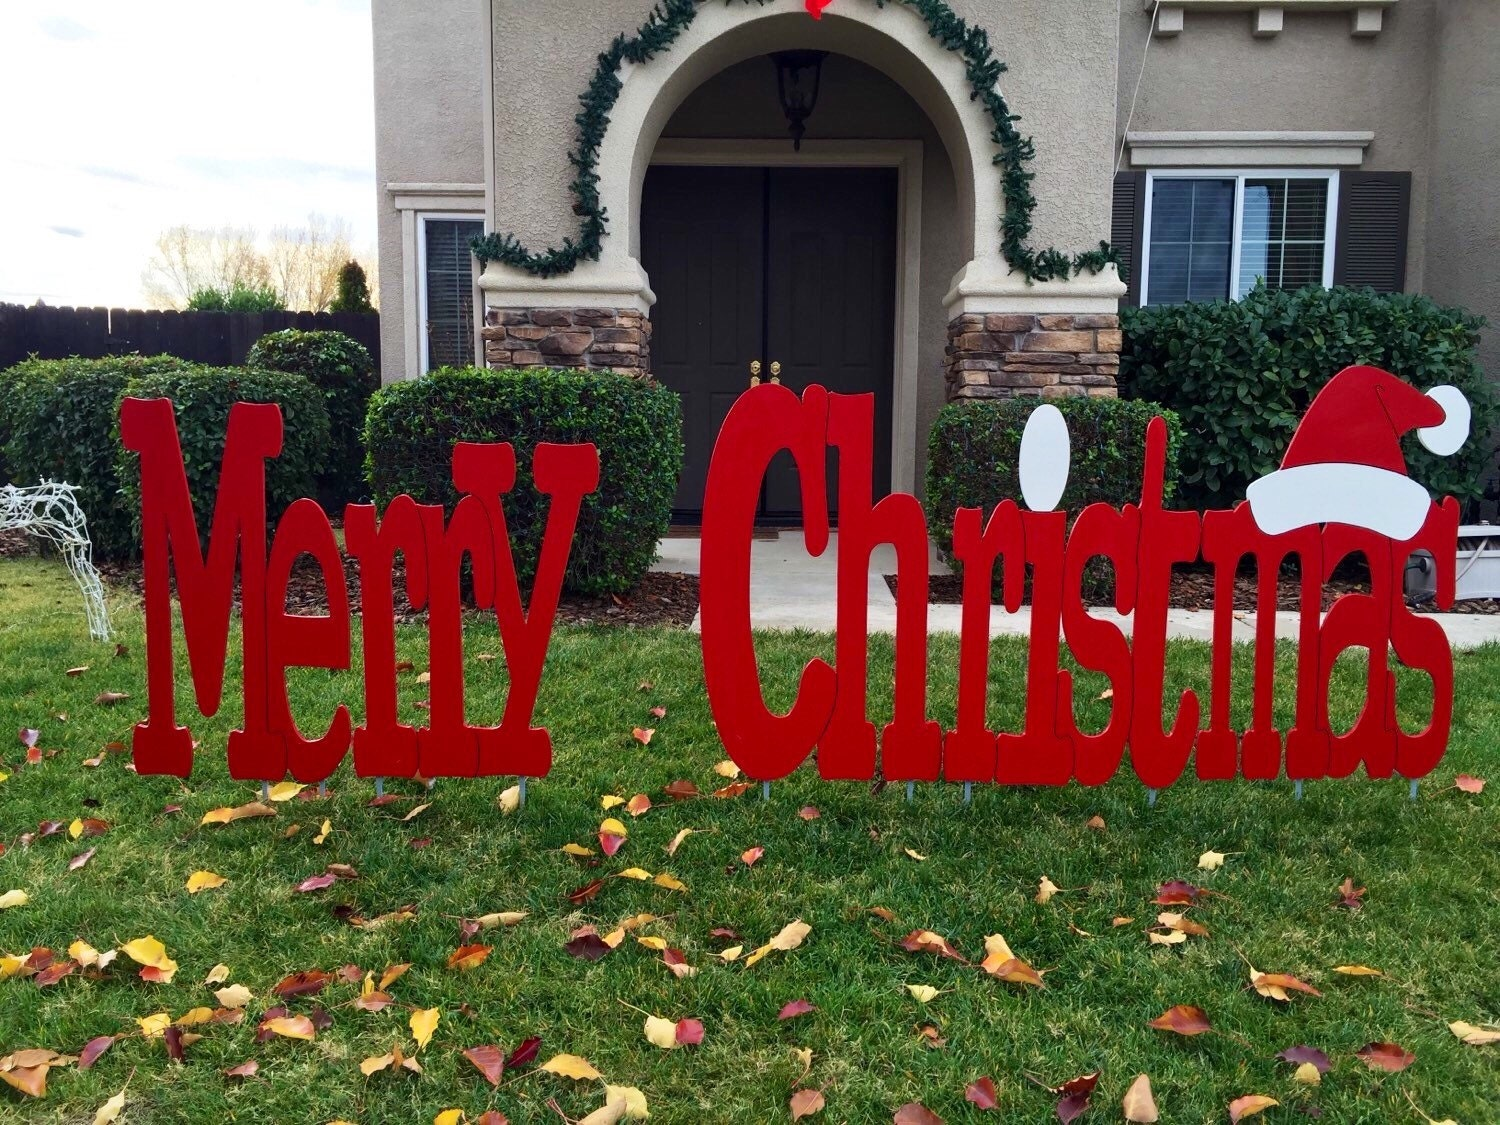 Merry Christmas Decorations Outdoor : Merry christmas outdoor holiday yard art sign large